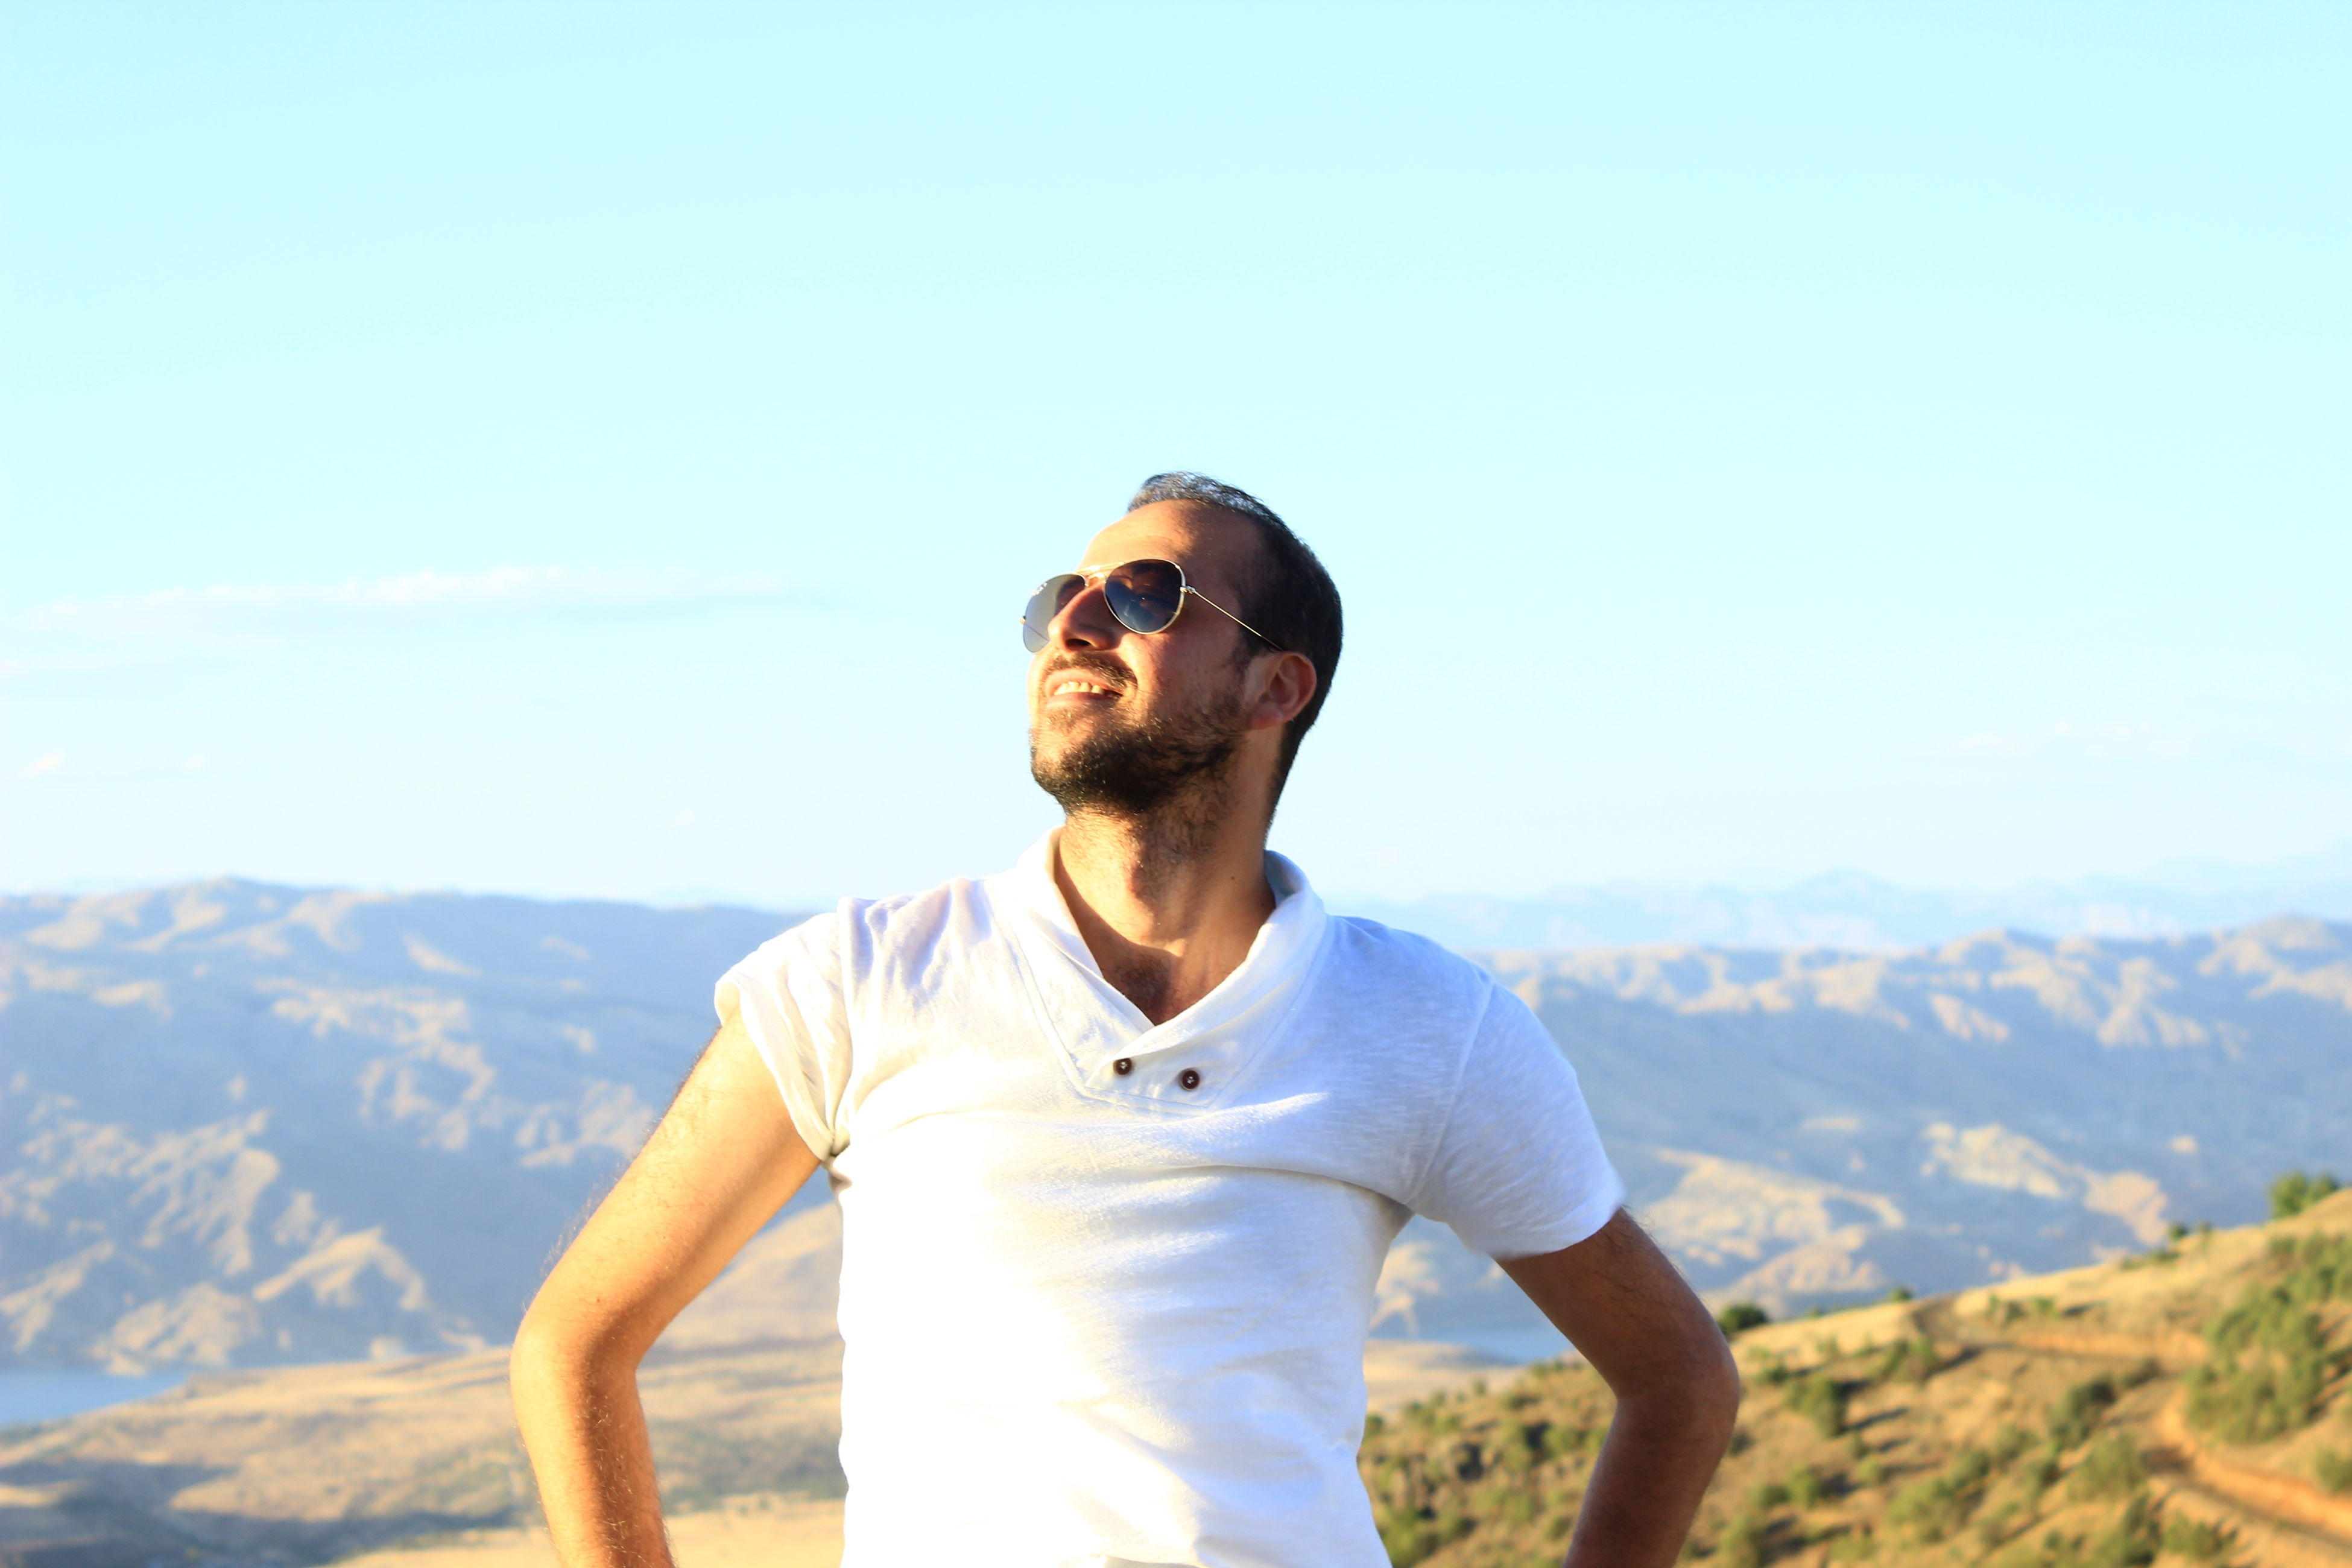 lifestyles, young men, leisure activity, young adult, mountain, sunglasses, person, looking at camera, portrait, sky, casual clothing, photography themes, front view, holding, clear sky, photographing, mid adult men, mountain range